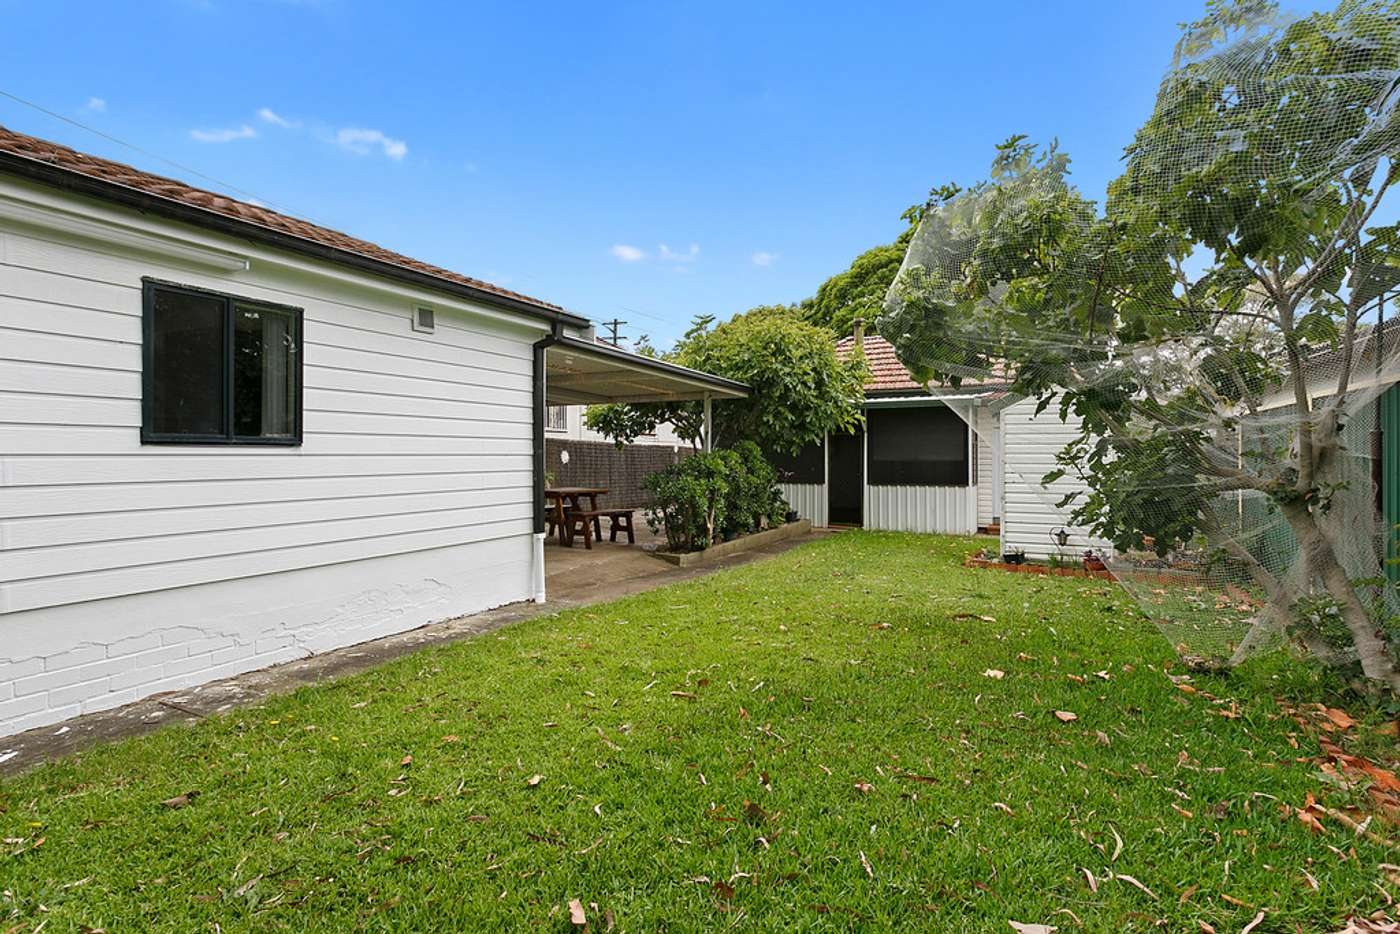 Seventh view of Homely house listing, 4 Anthony Street, Yagoona NSW 2199